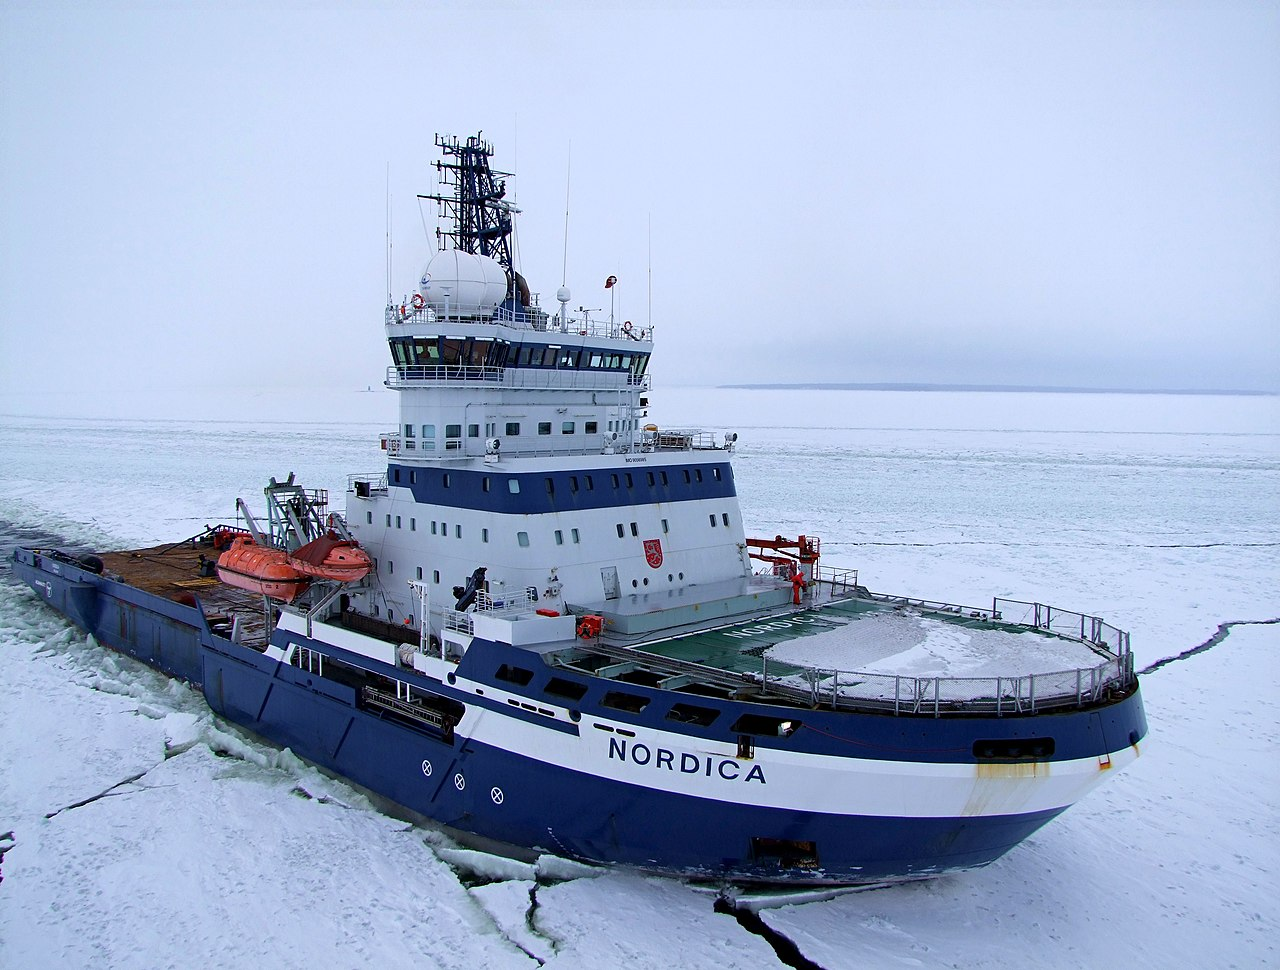 Nordica on 28 February 2009